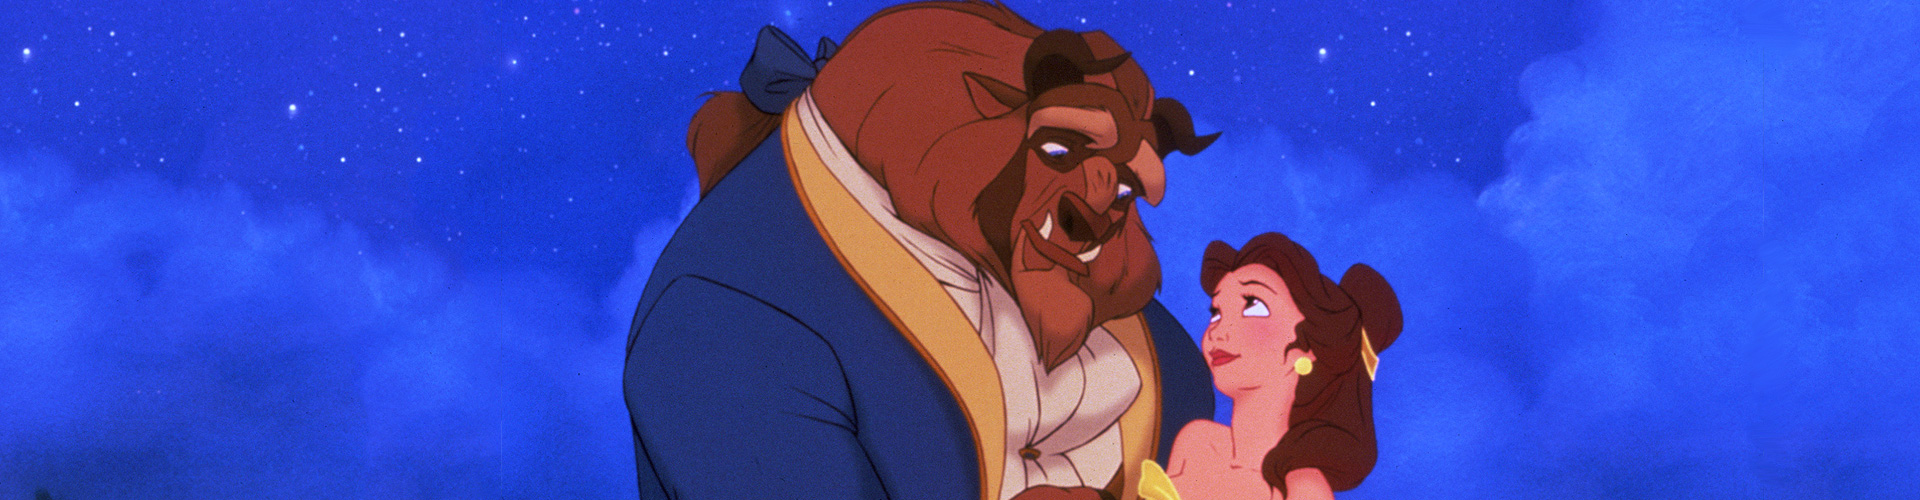 Who's going to play who in The Beauty and the Beast movie?